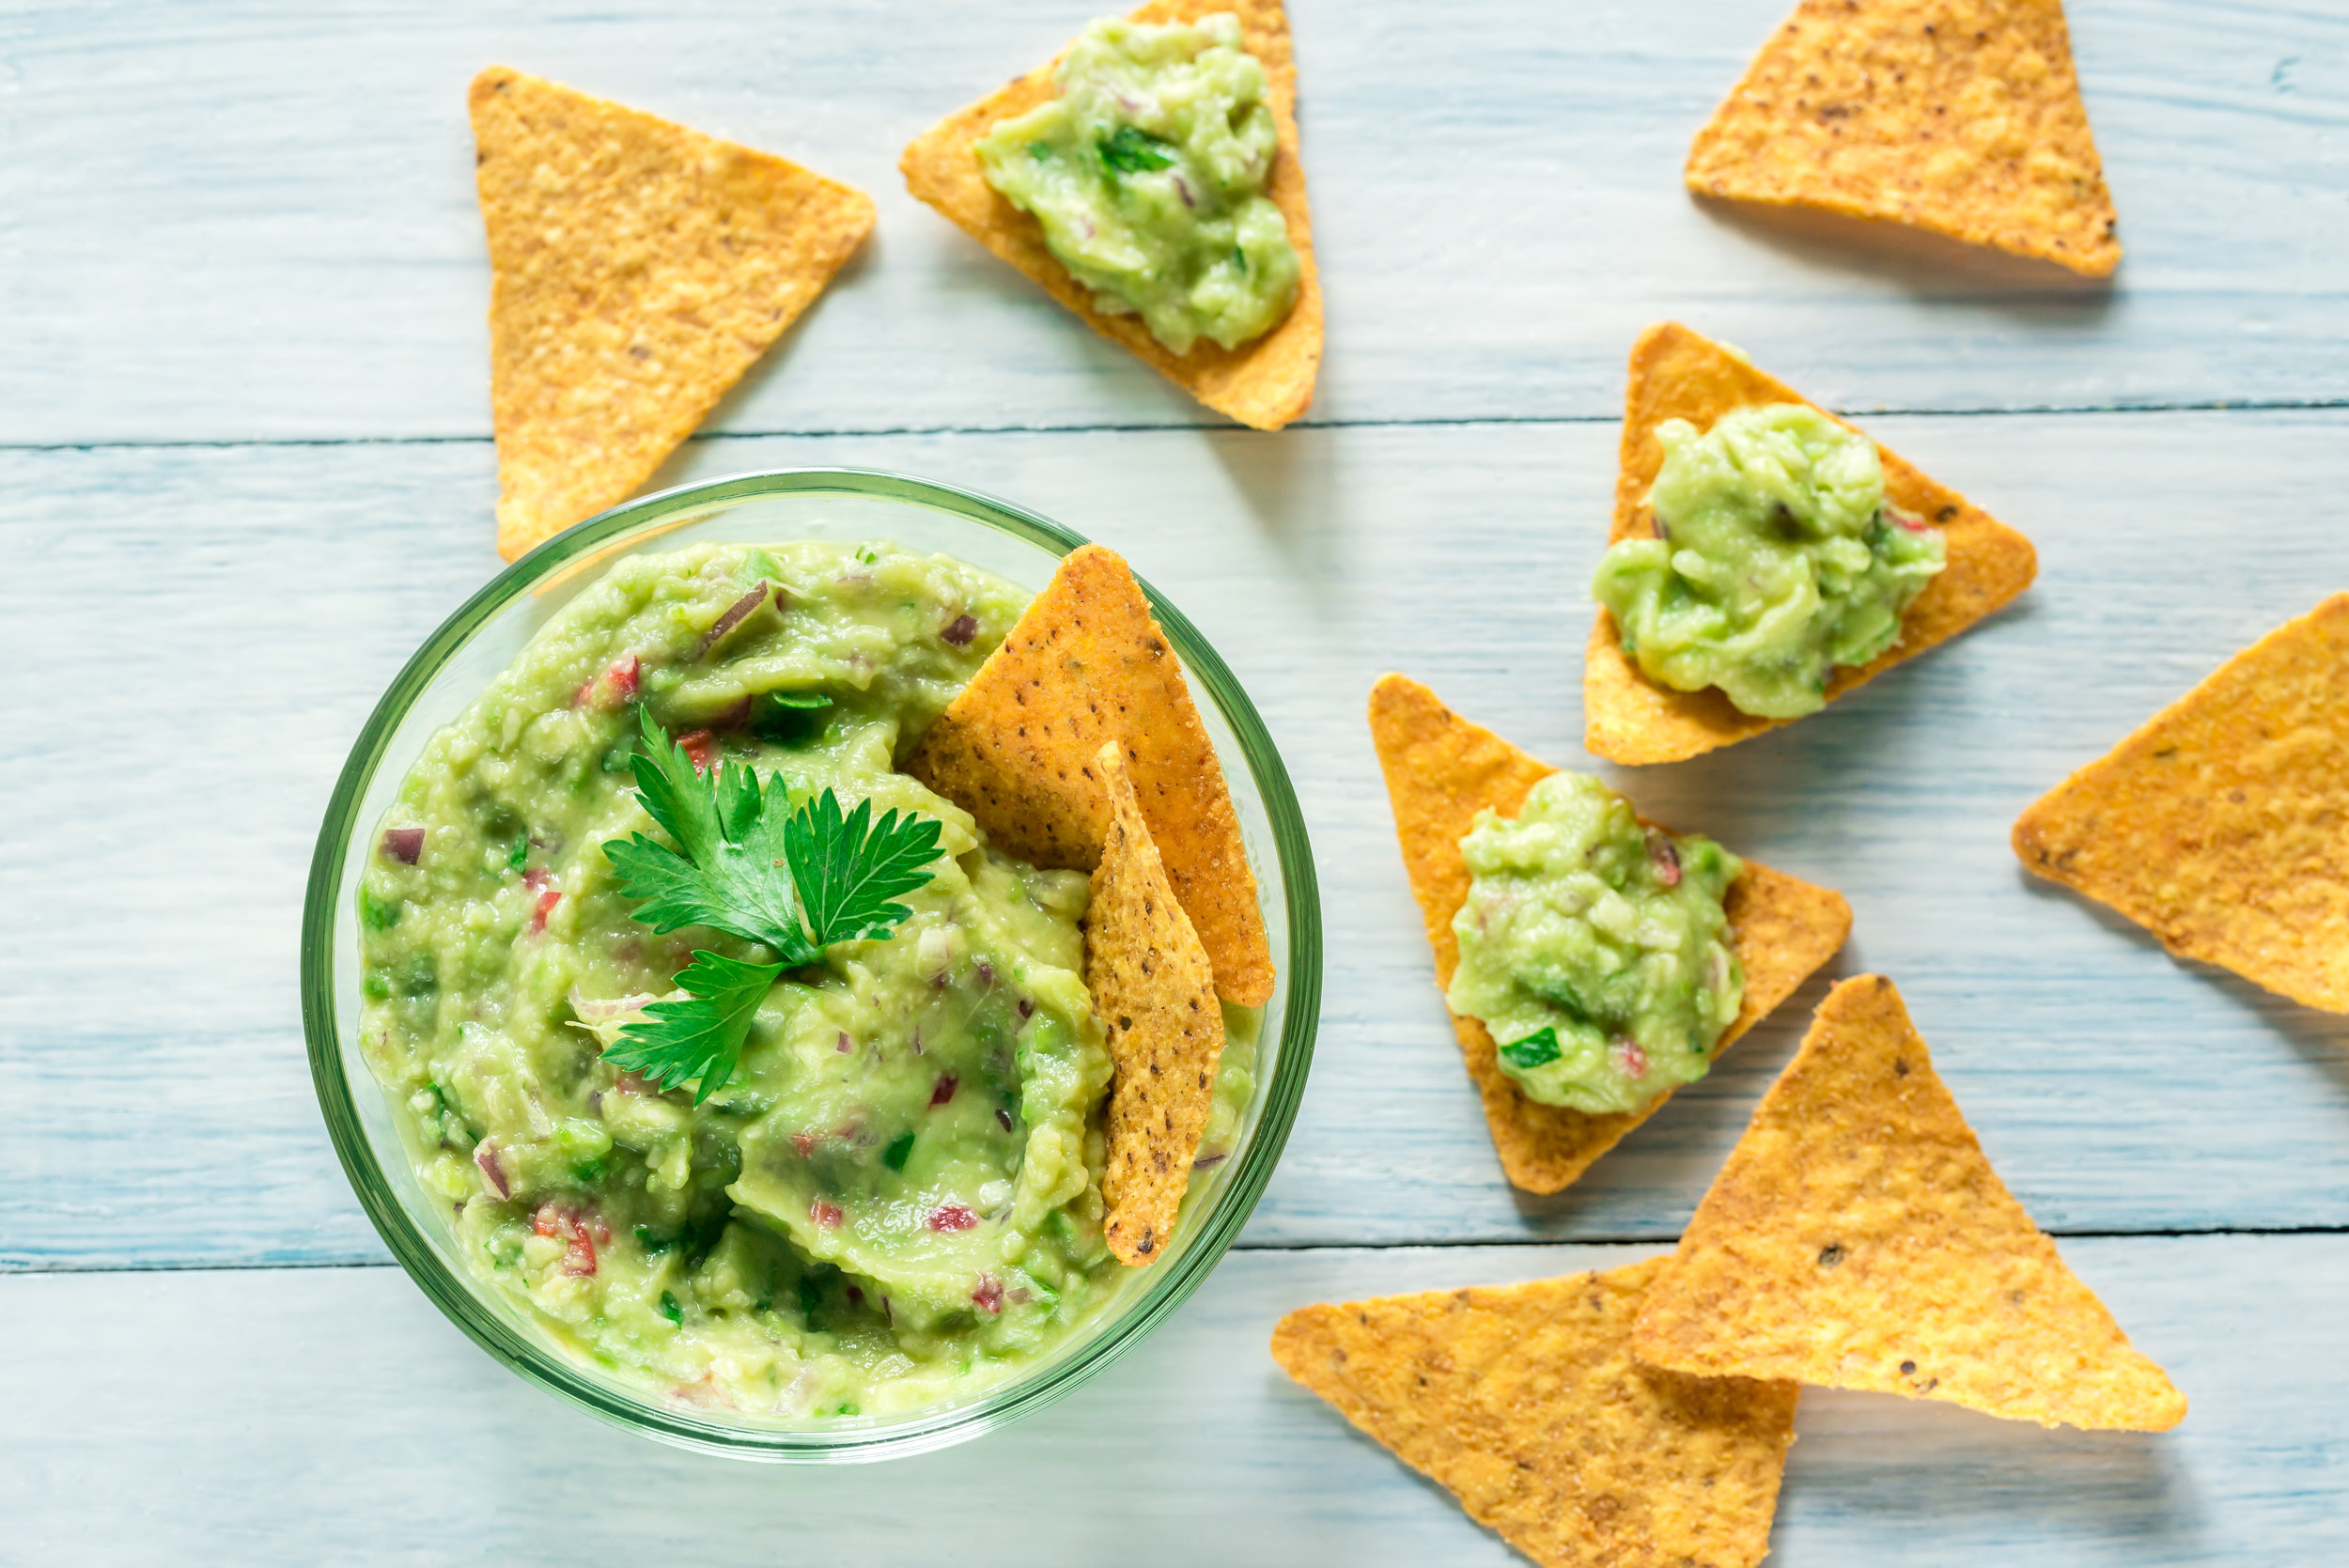 Item Recommendations   Chips and guac go great together until you're allergic to avocado. We recommend related items as they relate to you.